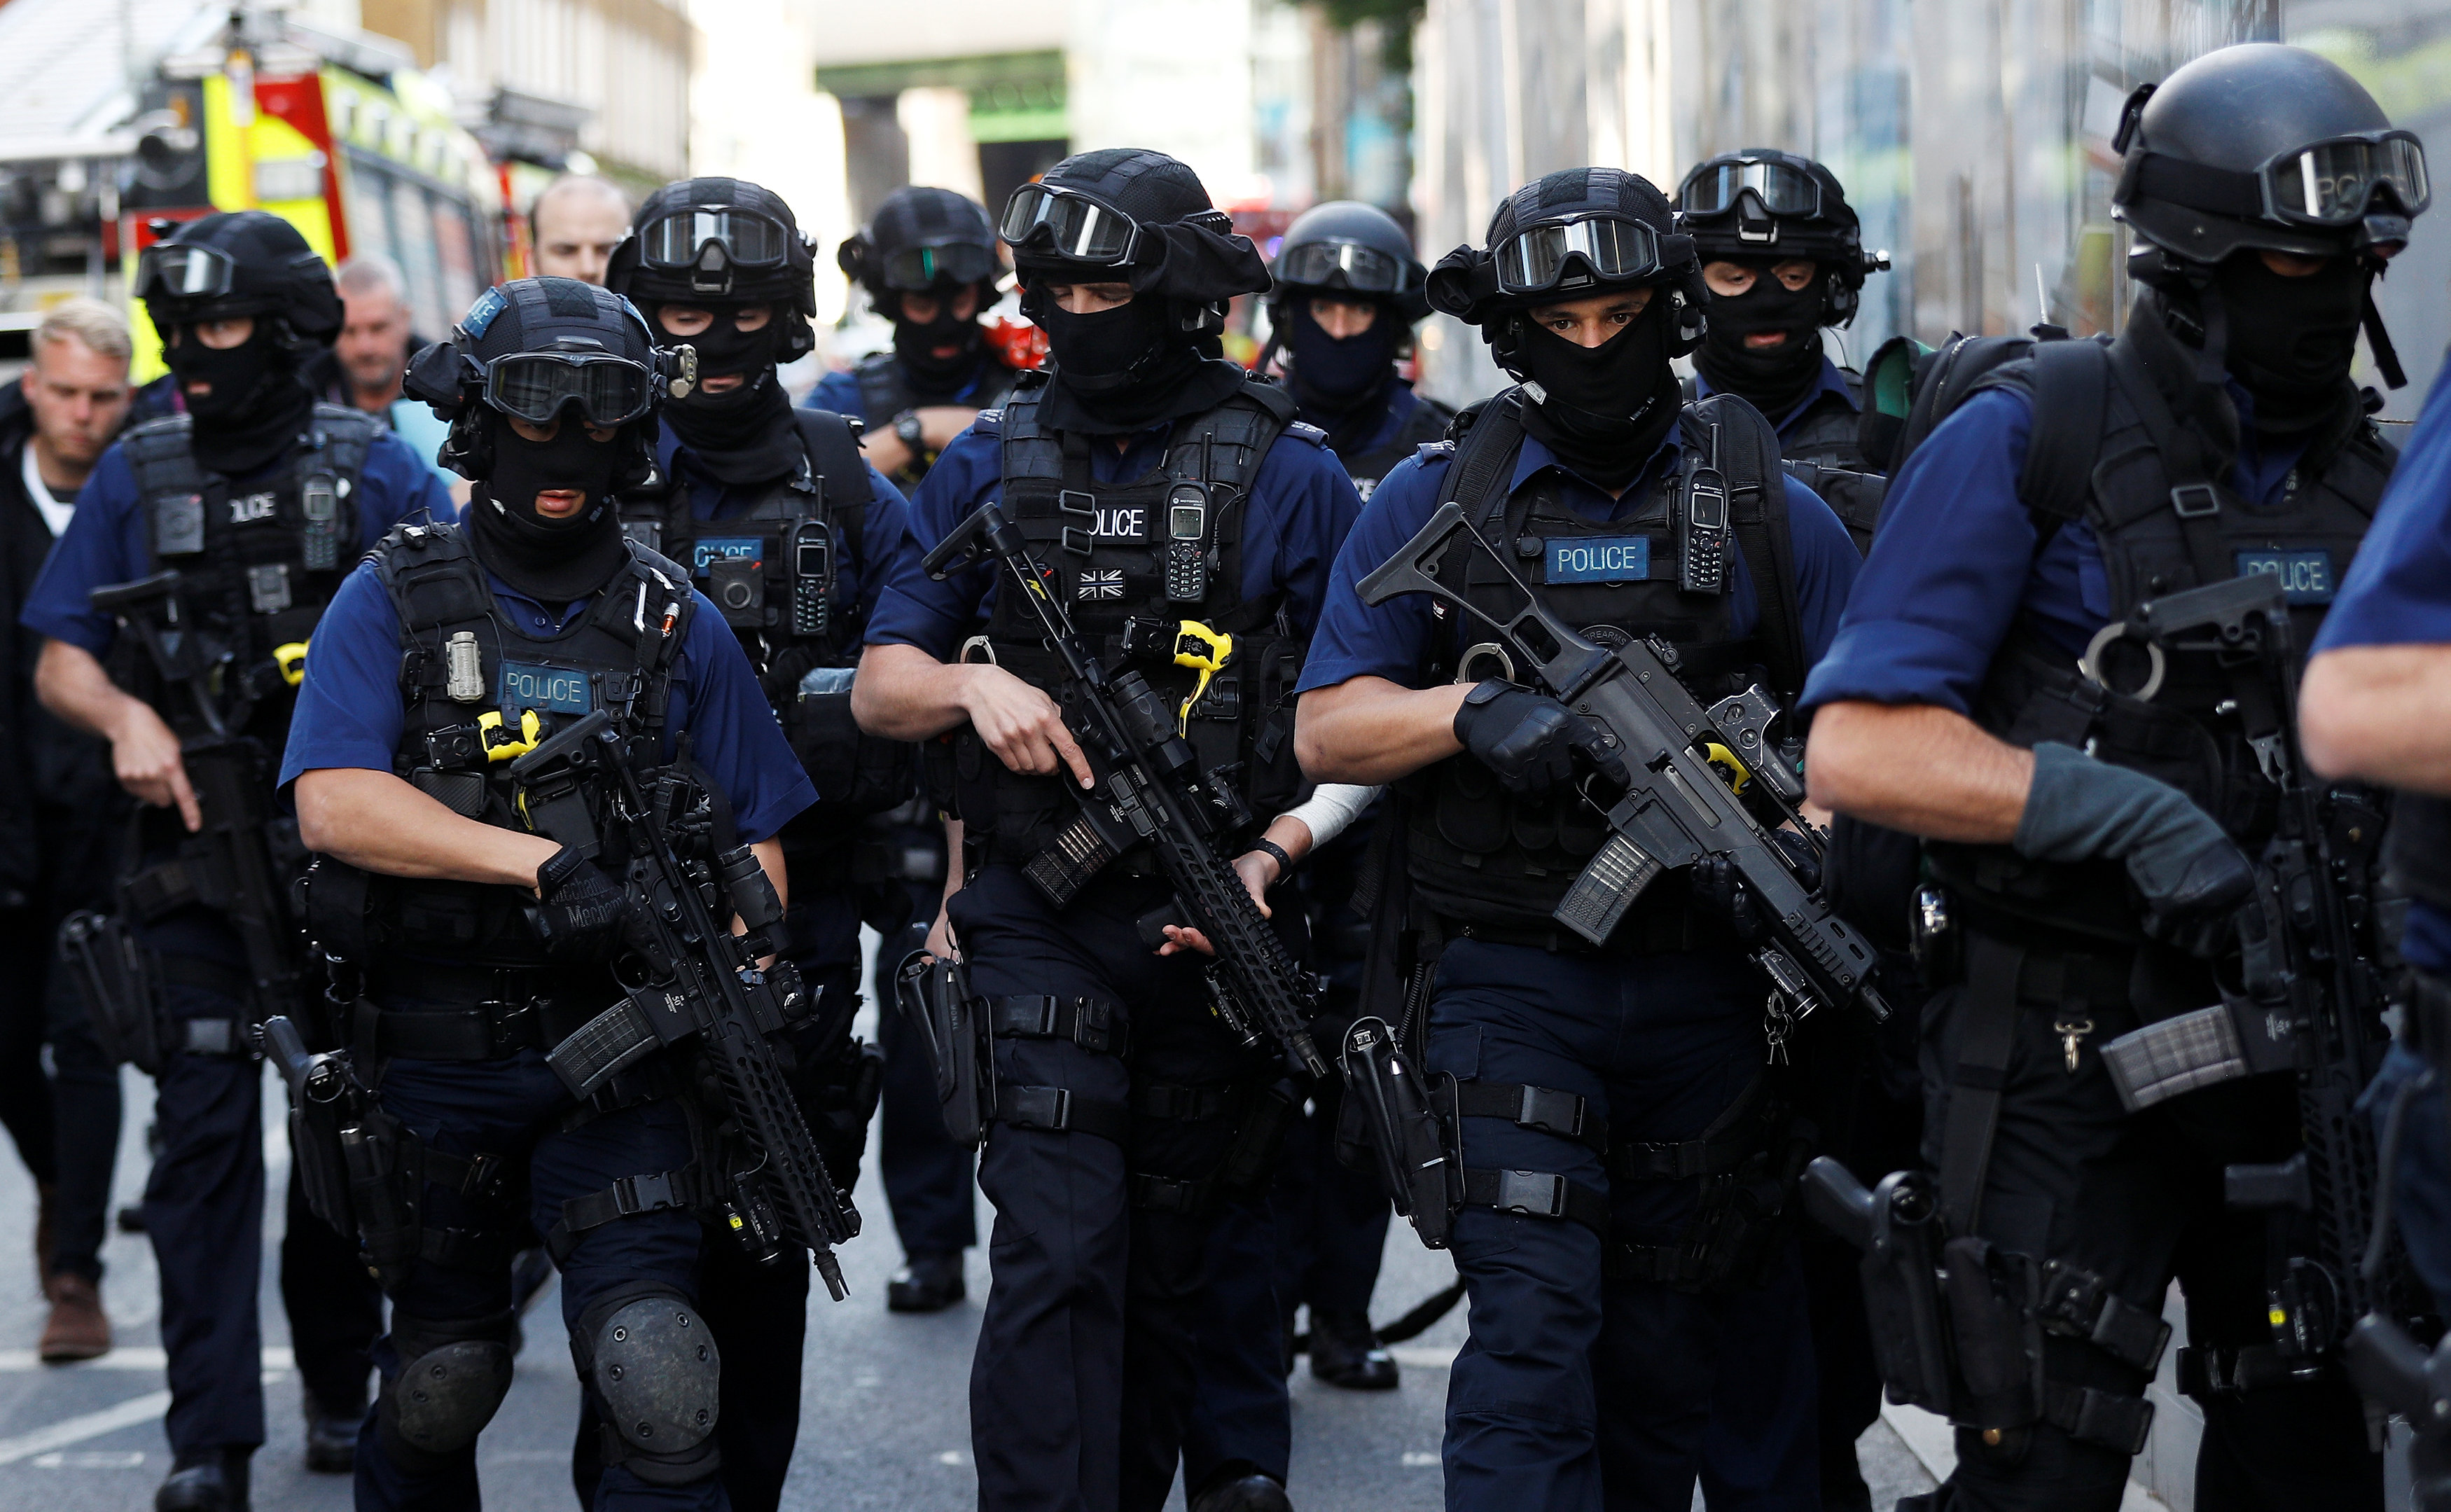 Armed police officers walk near Borough Market after an attack left 7 people dead and dozens injured in London, Britain n June 4, 2017. (REUTERS/Peter Nicholls)